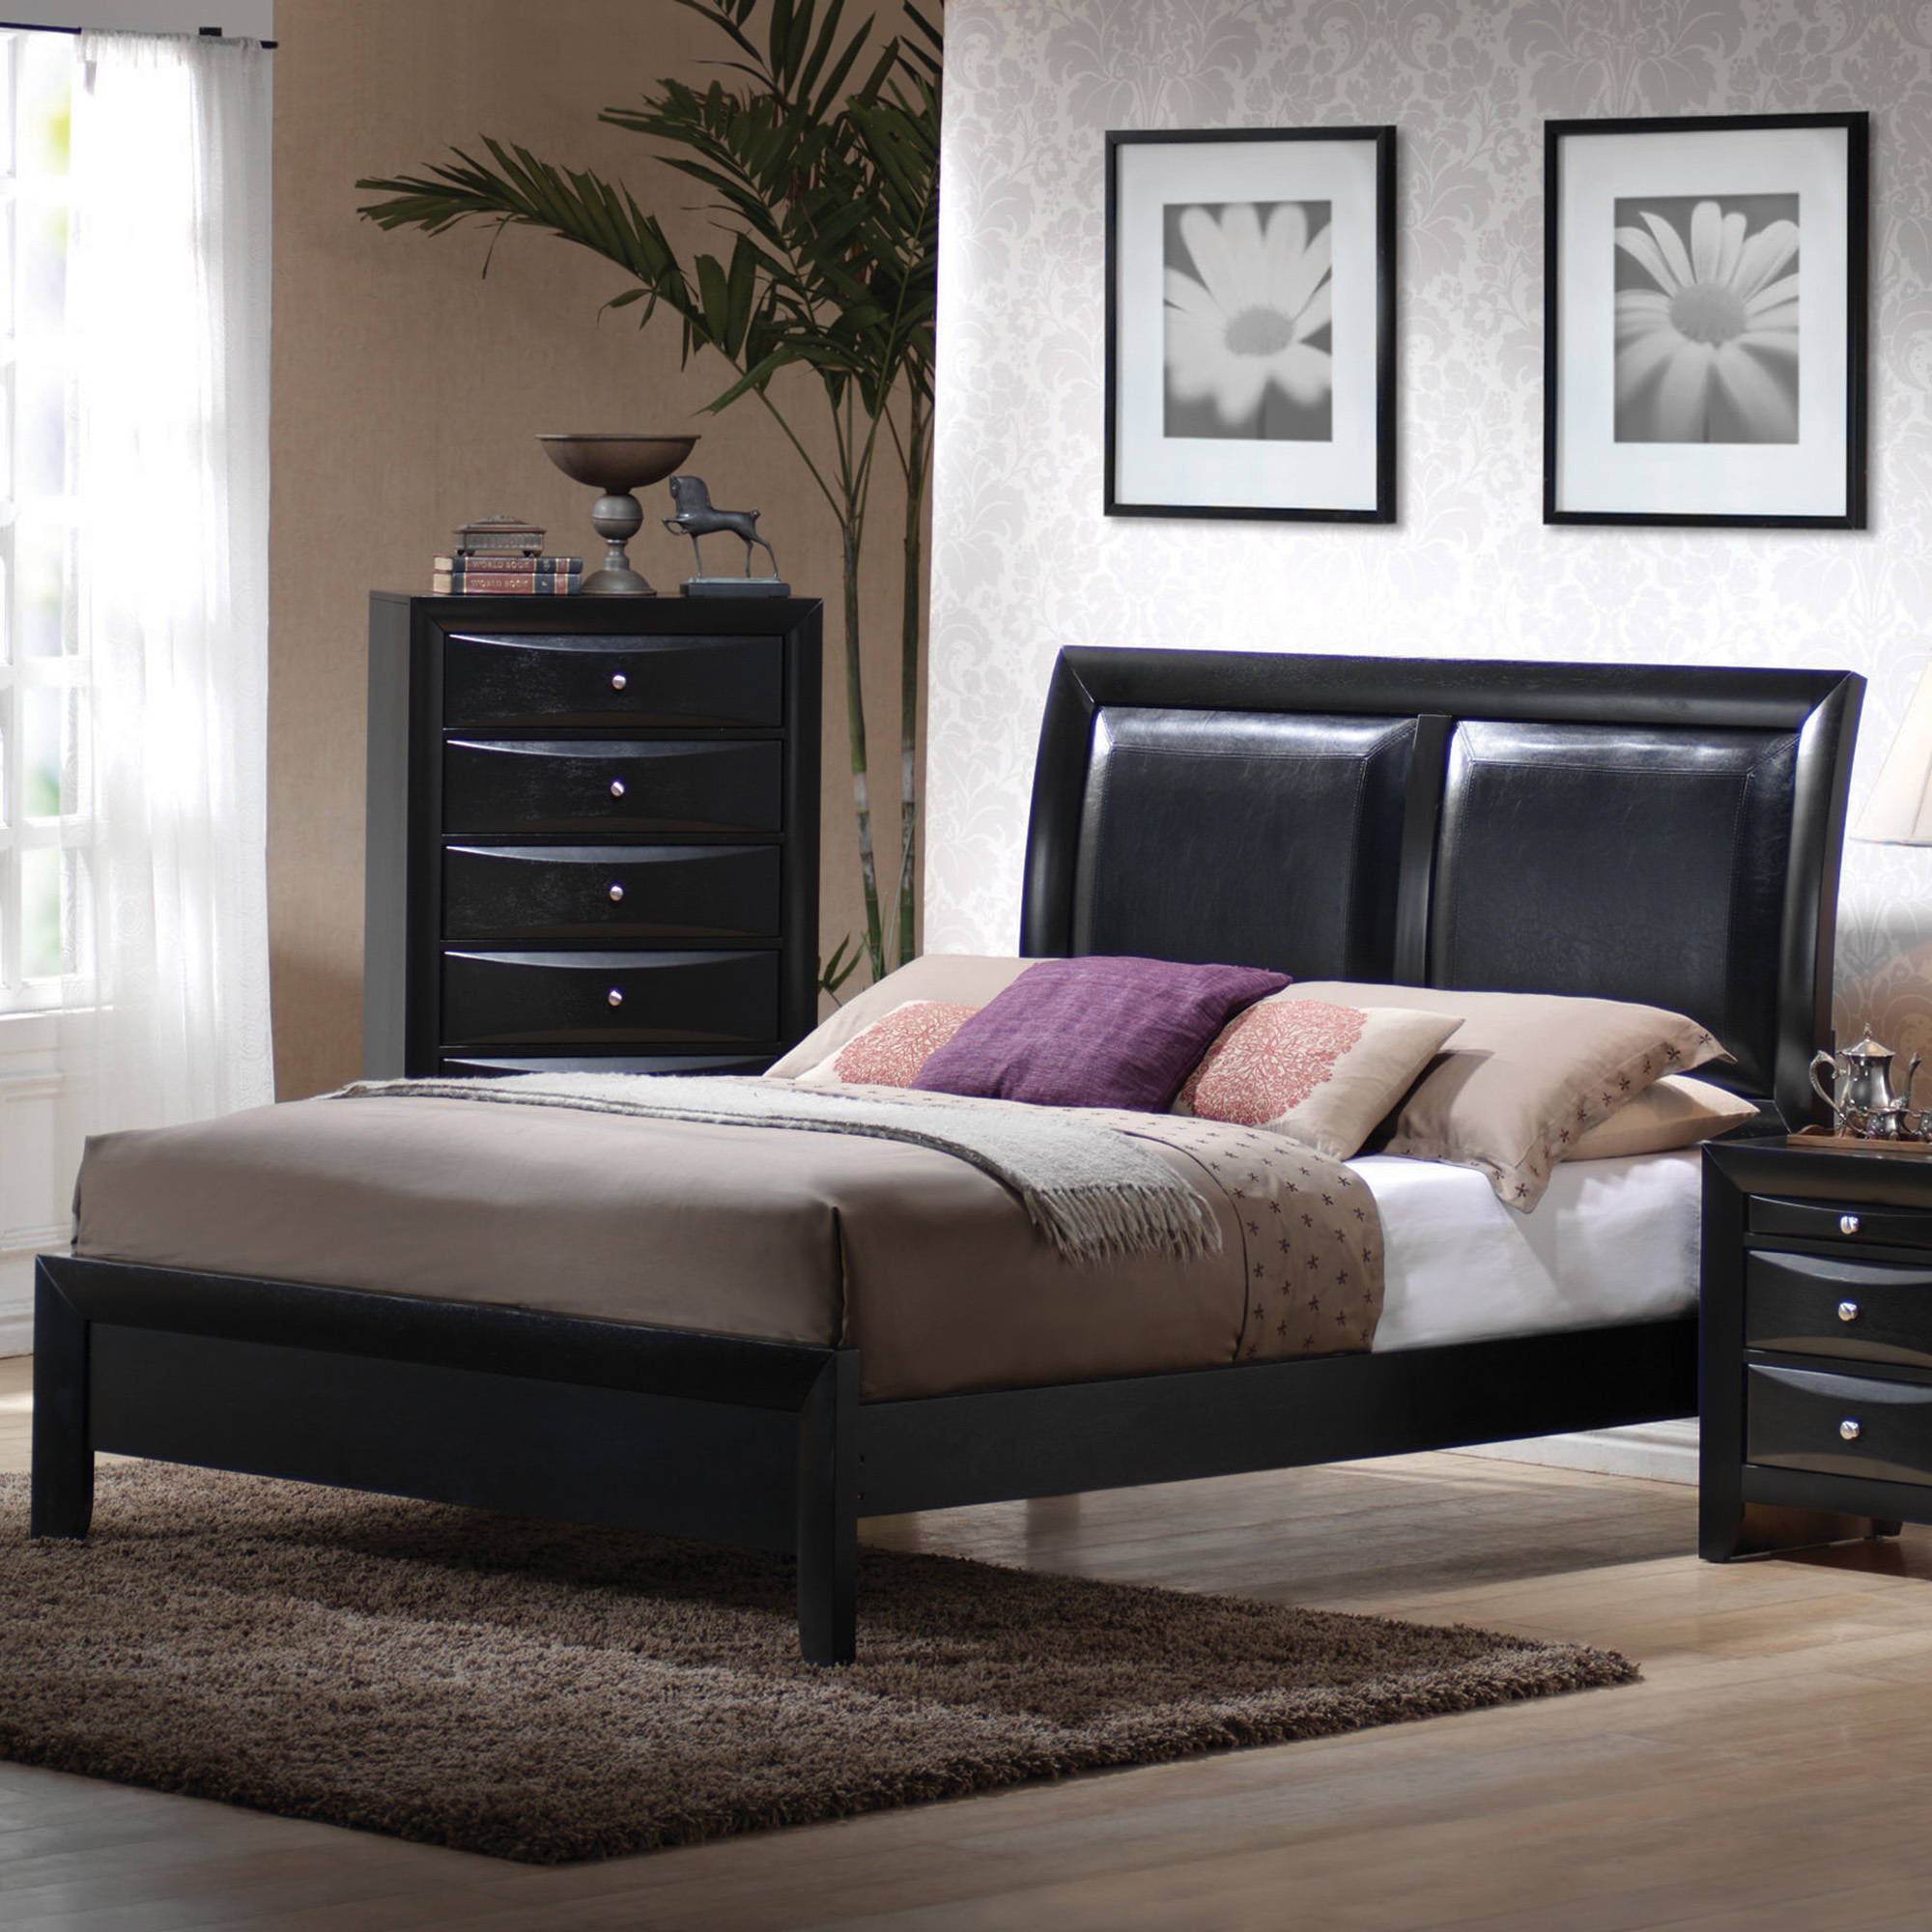 Coaster Furniture Briana Collection King Bed, Black (Box ...